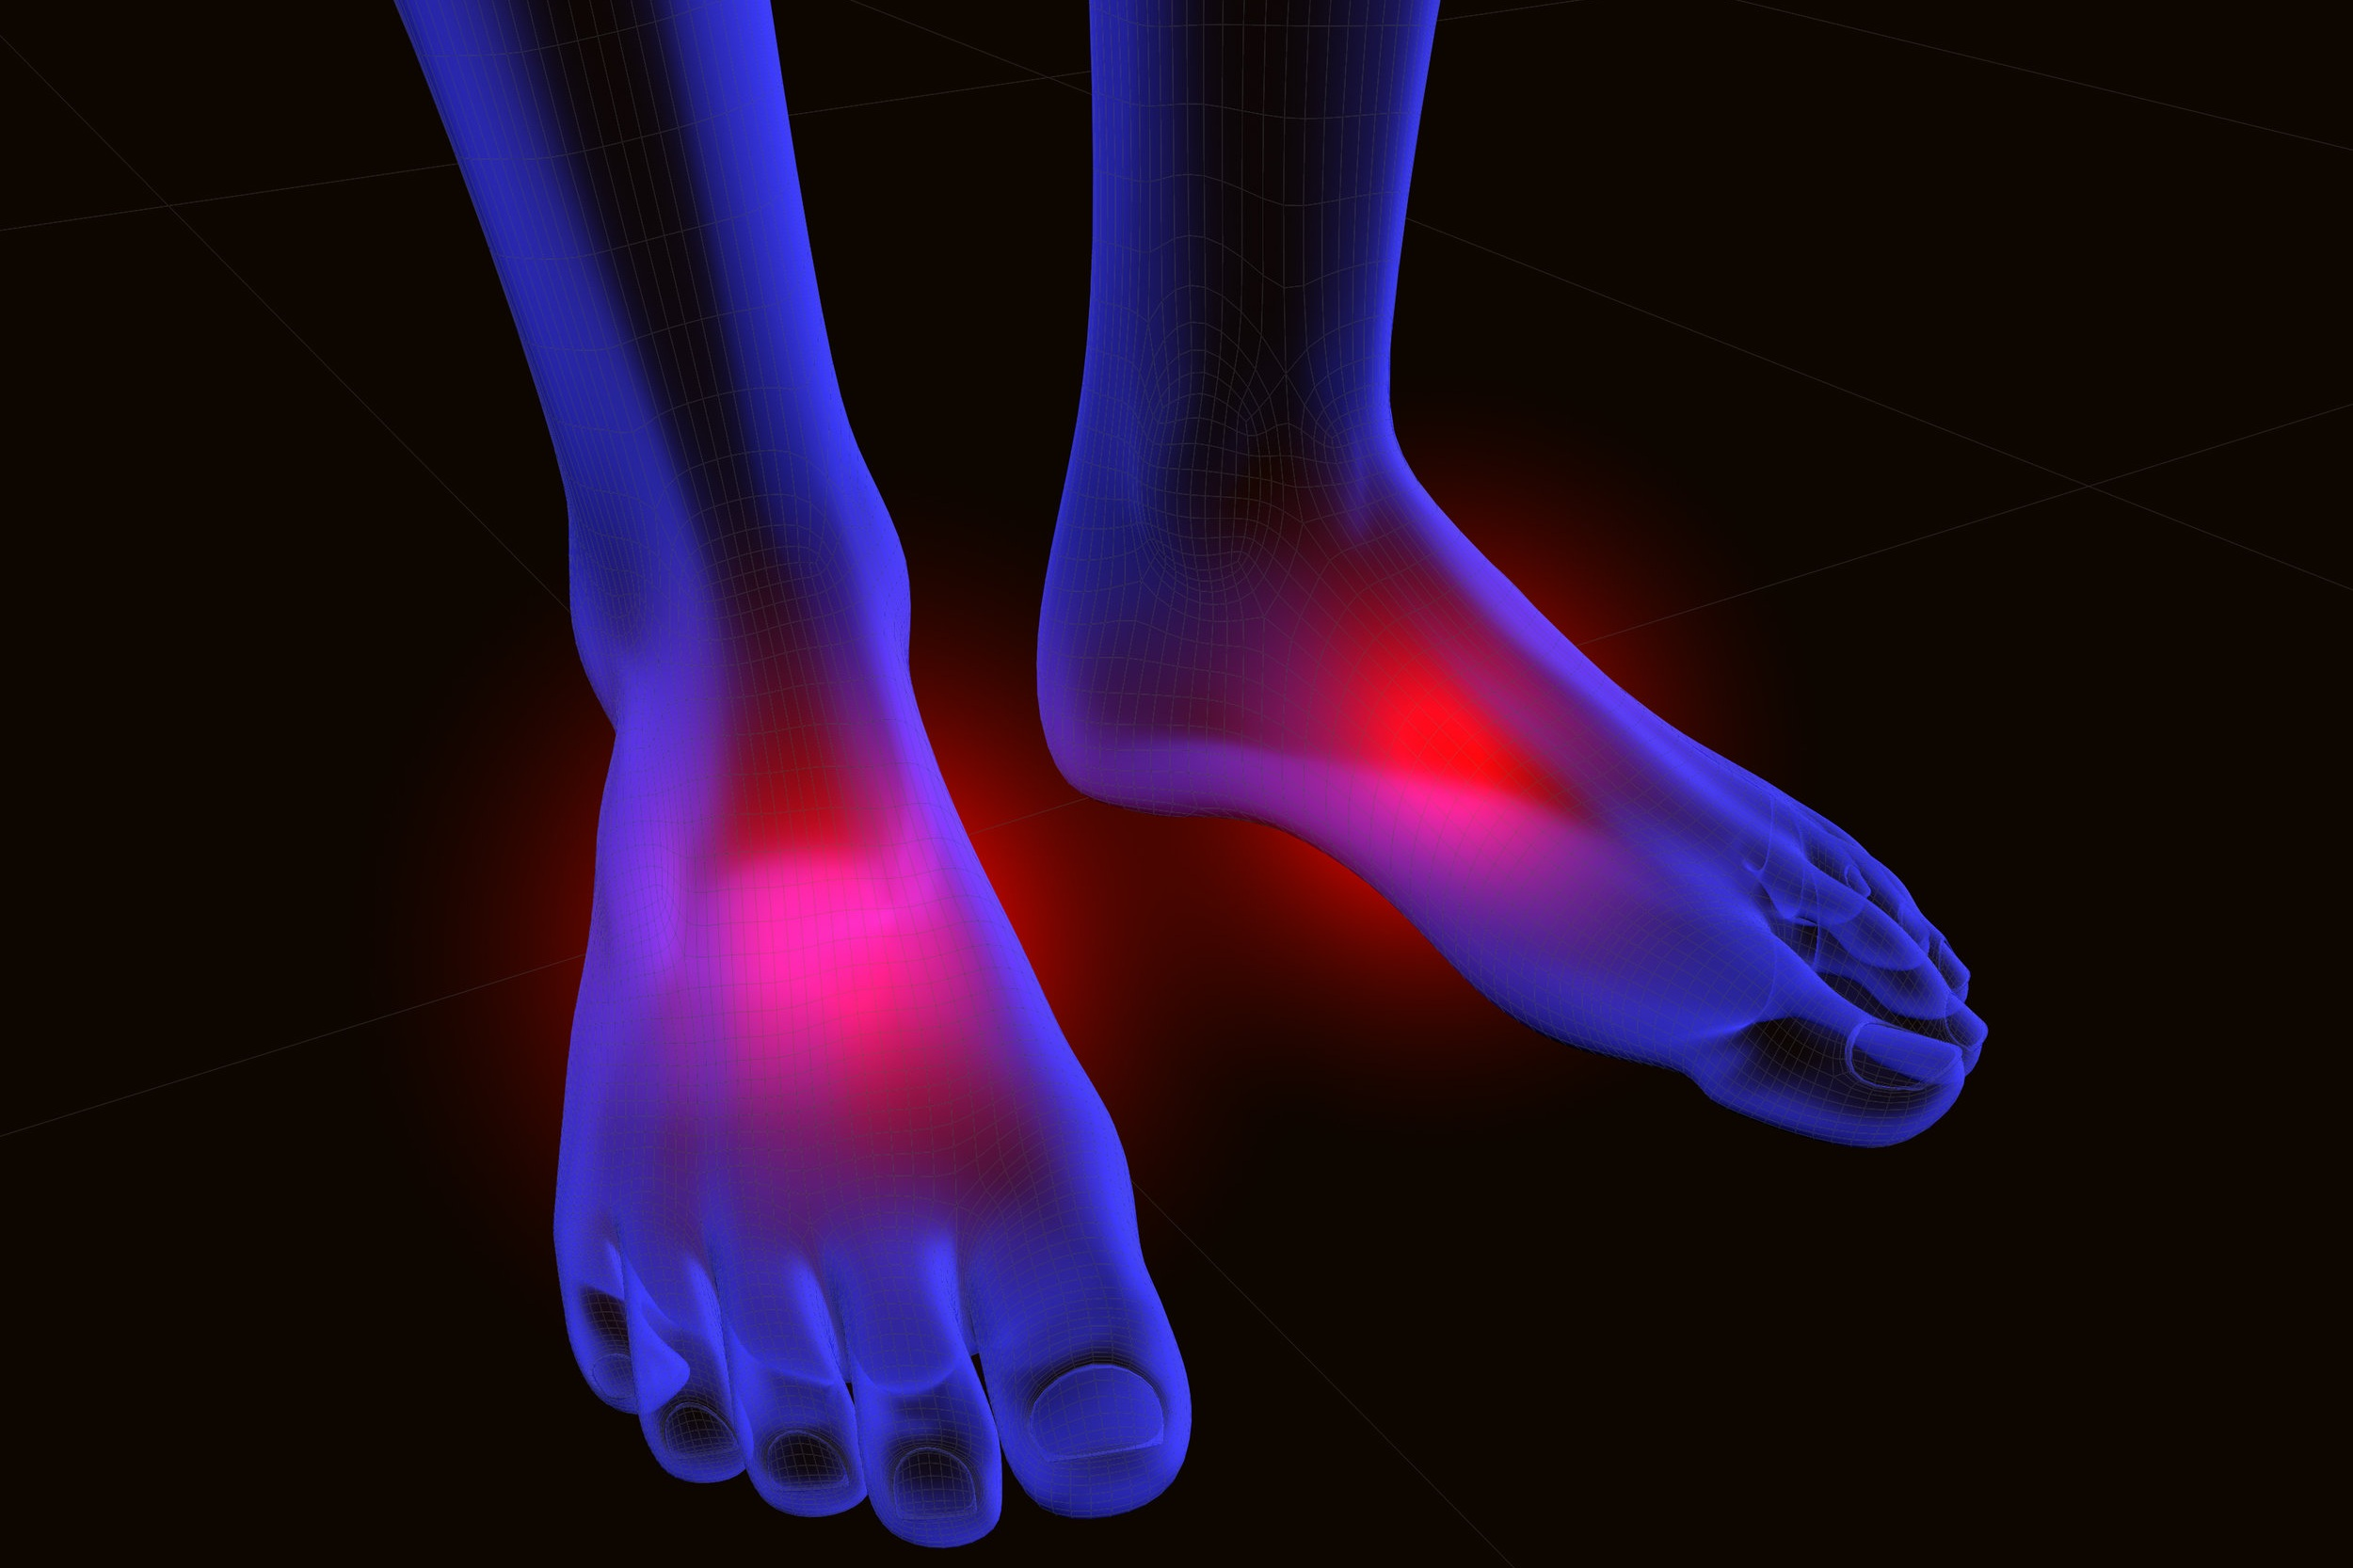 neuroma treatment for numbness and pain relief - podiatrists in irwin and greensburg,pa